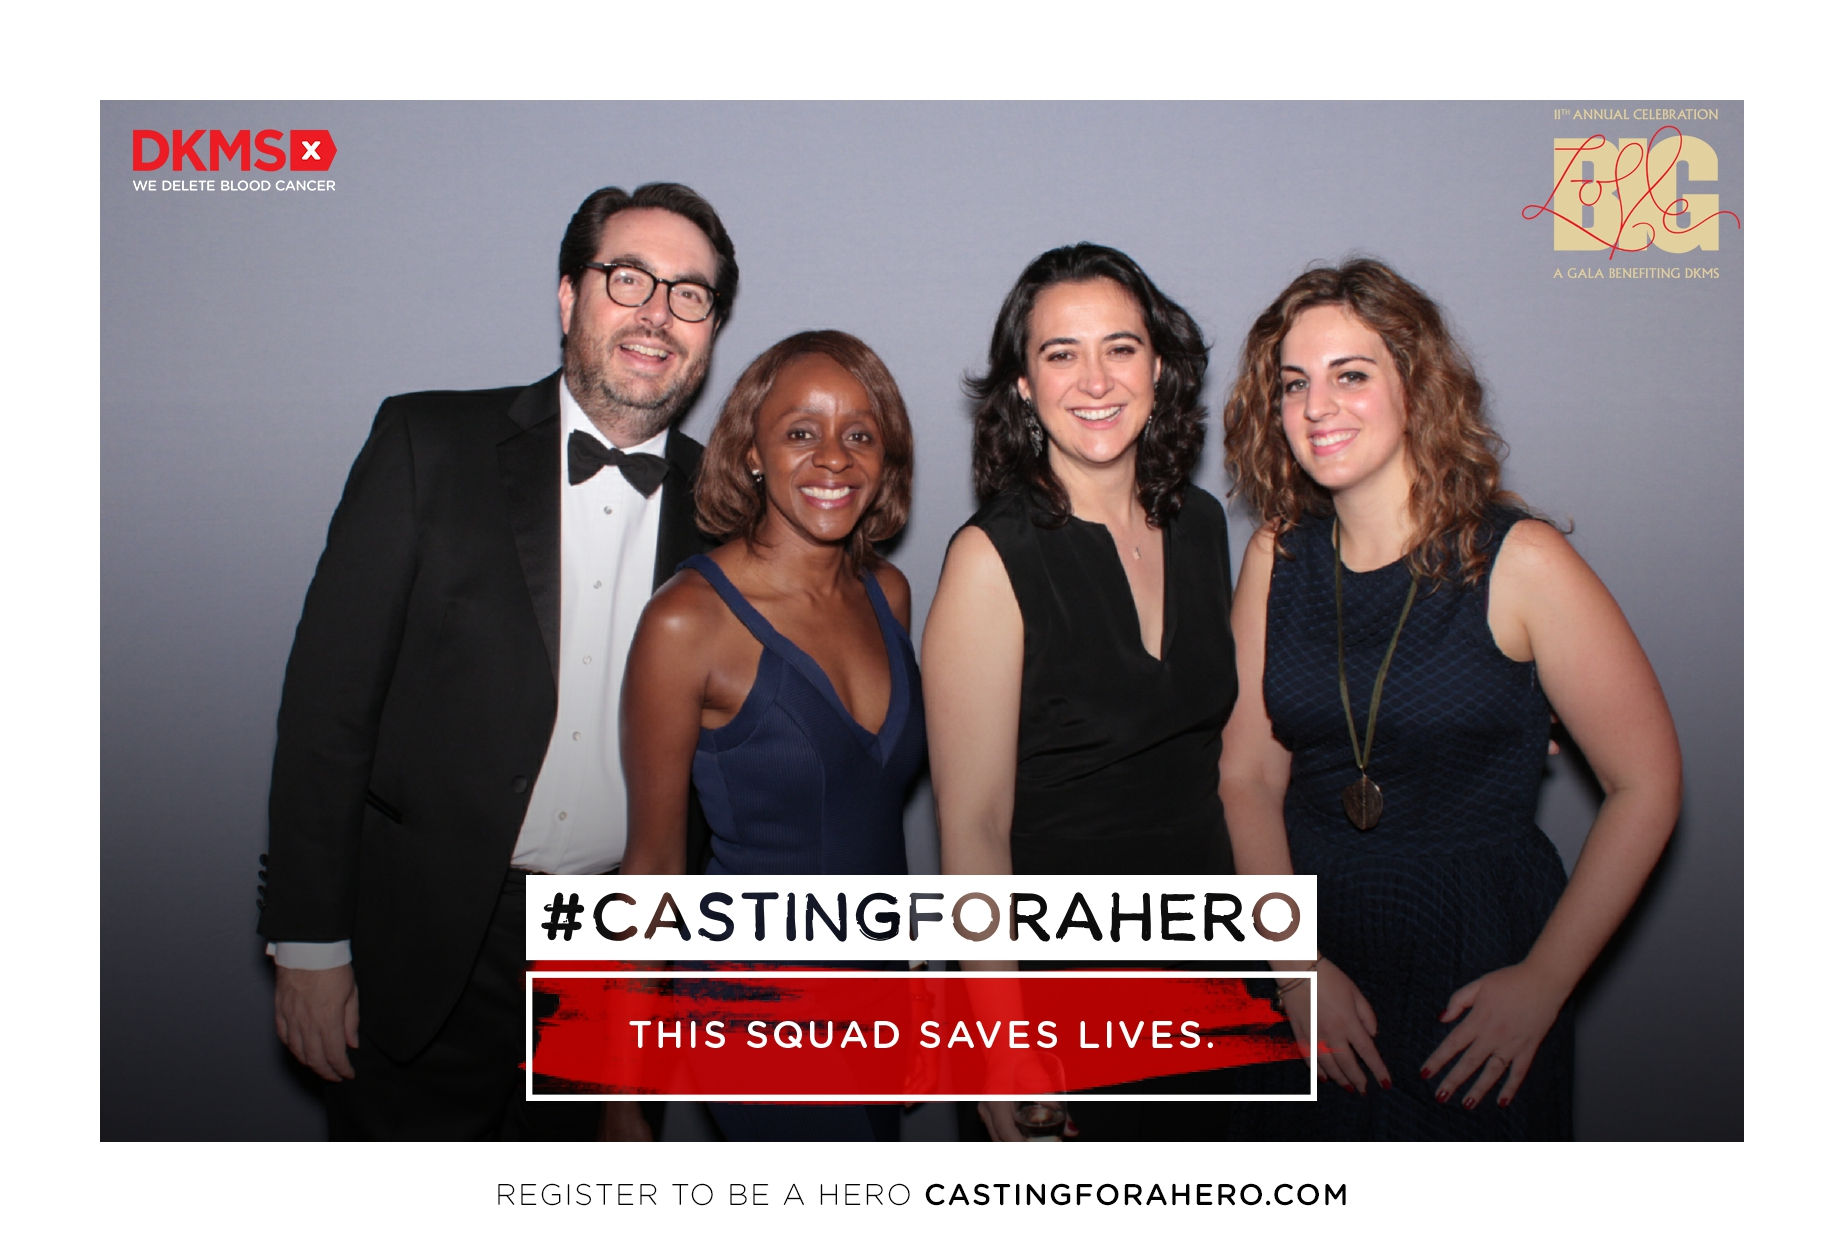 dkms big love gala photo booth rental new york